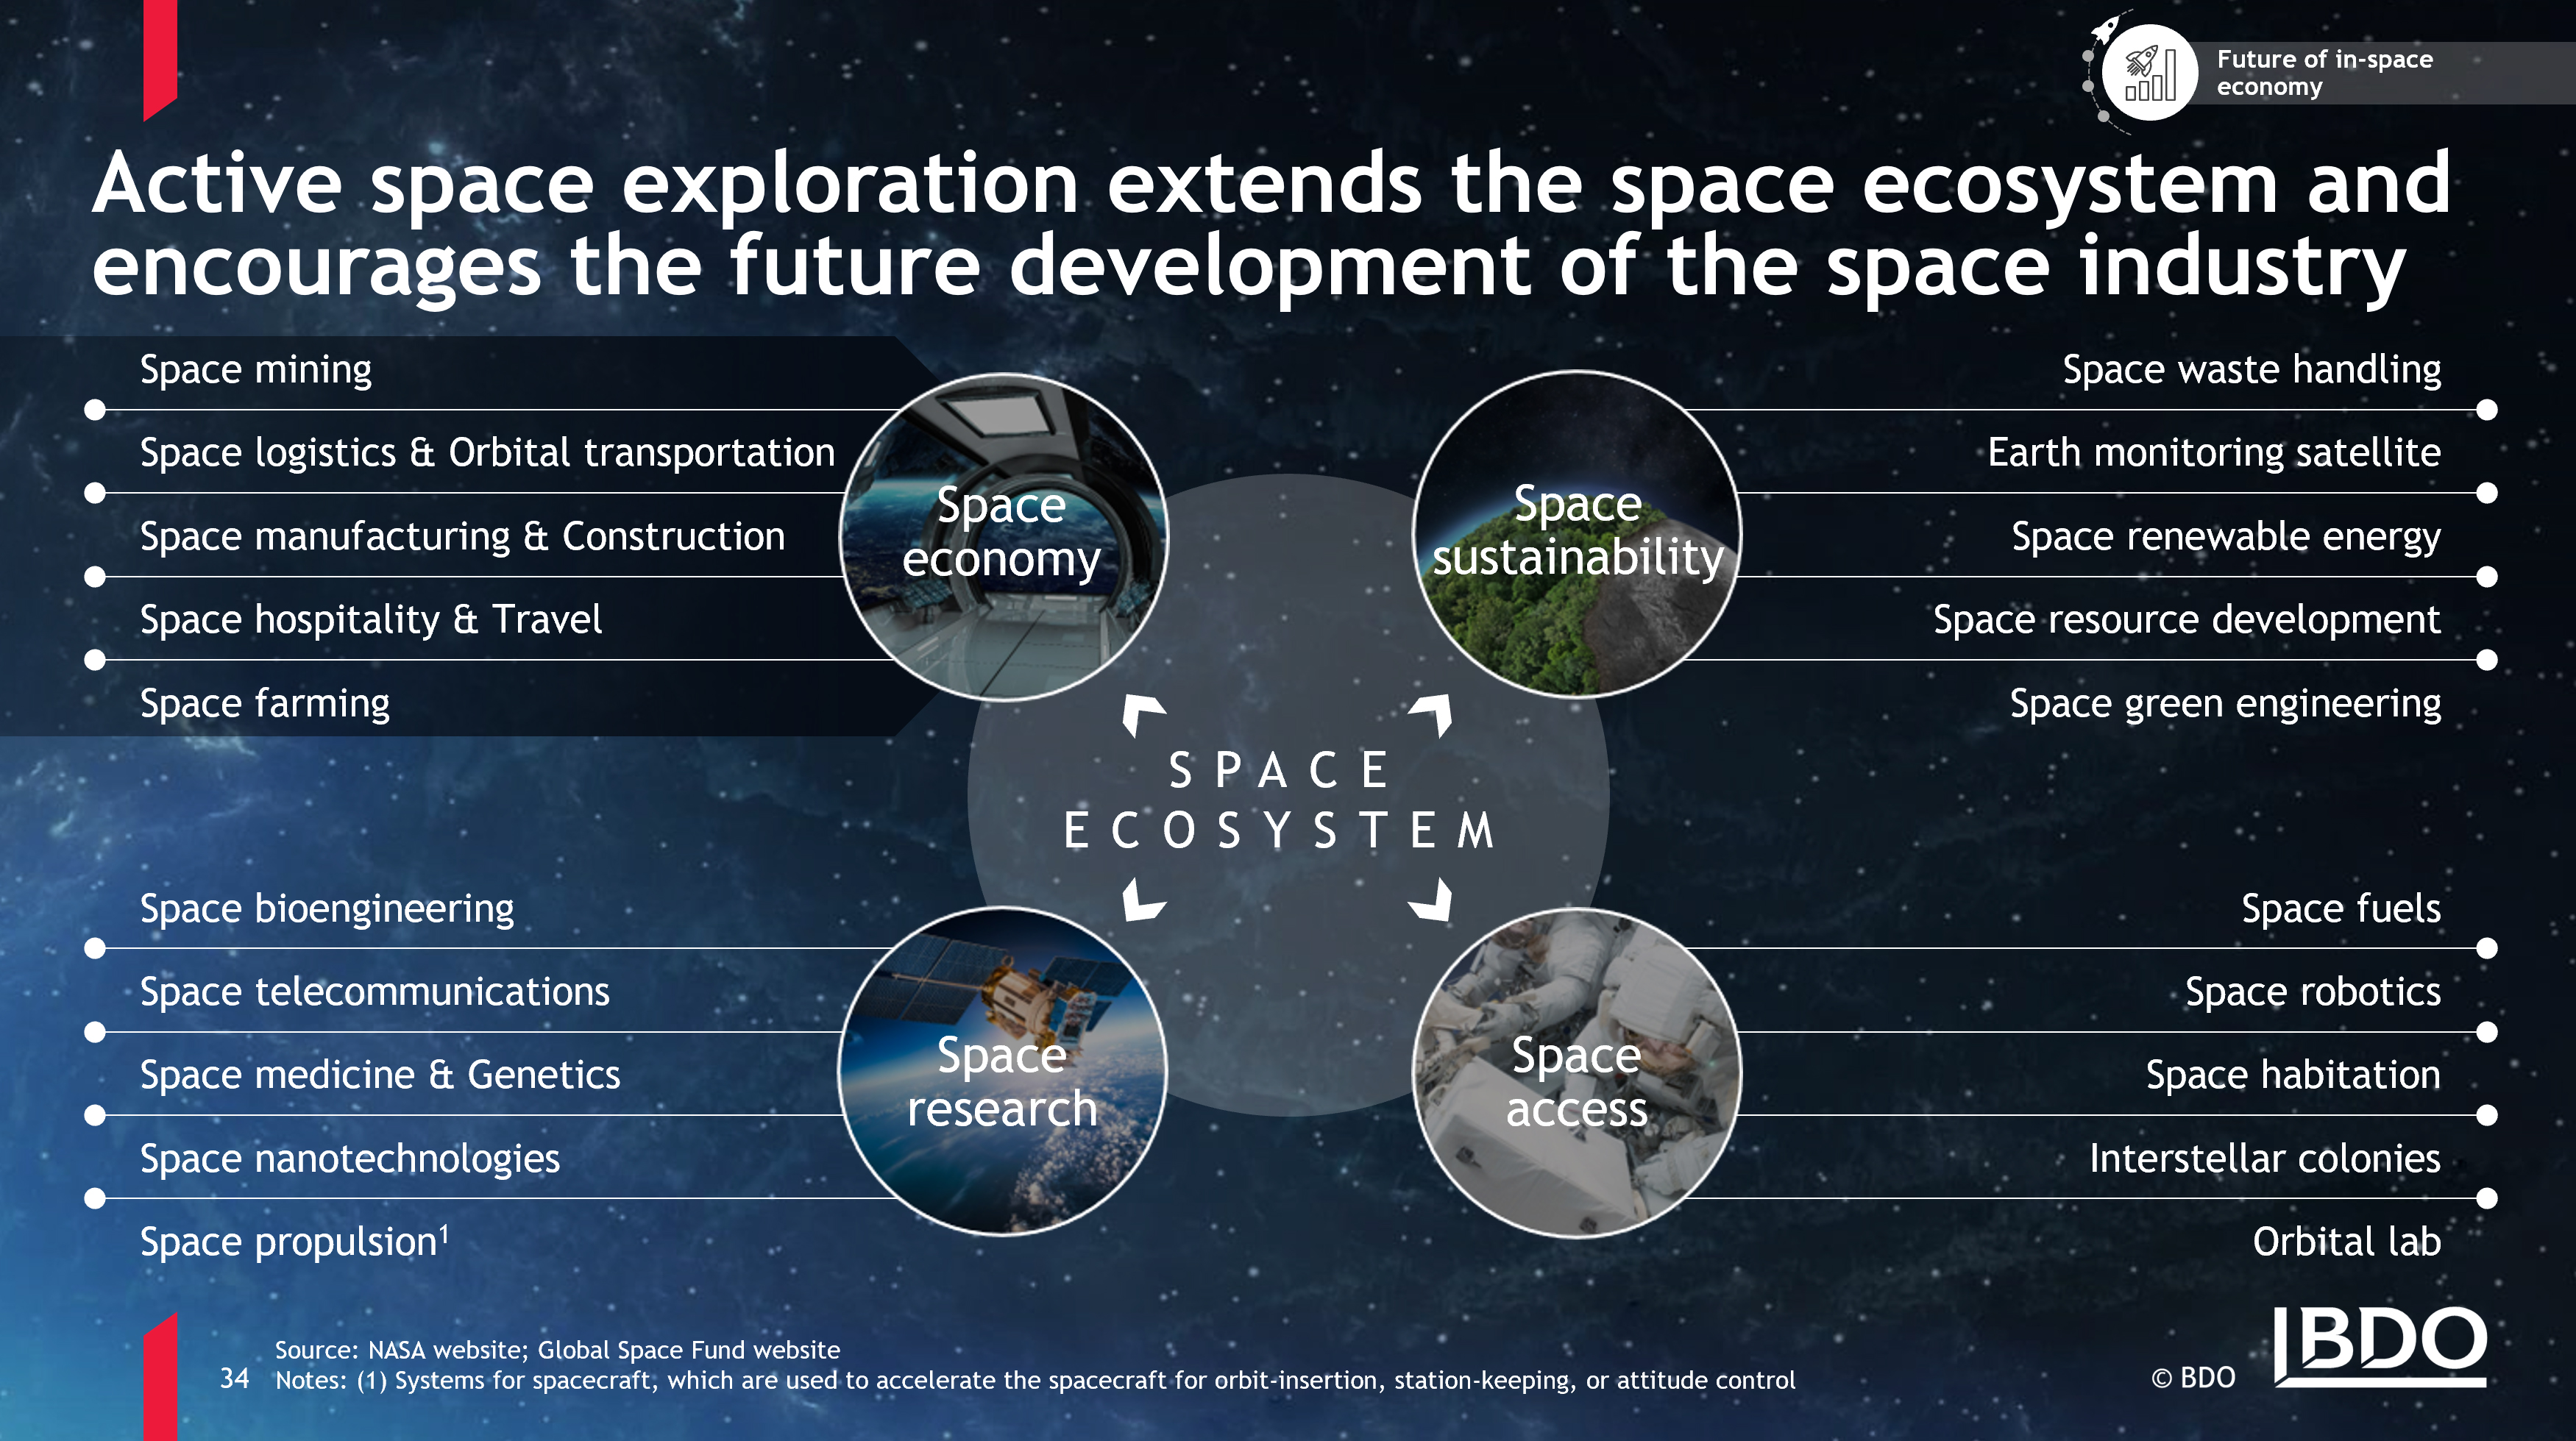 Conquering space: how private companies are changing the industry and our future